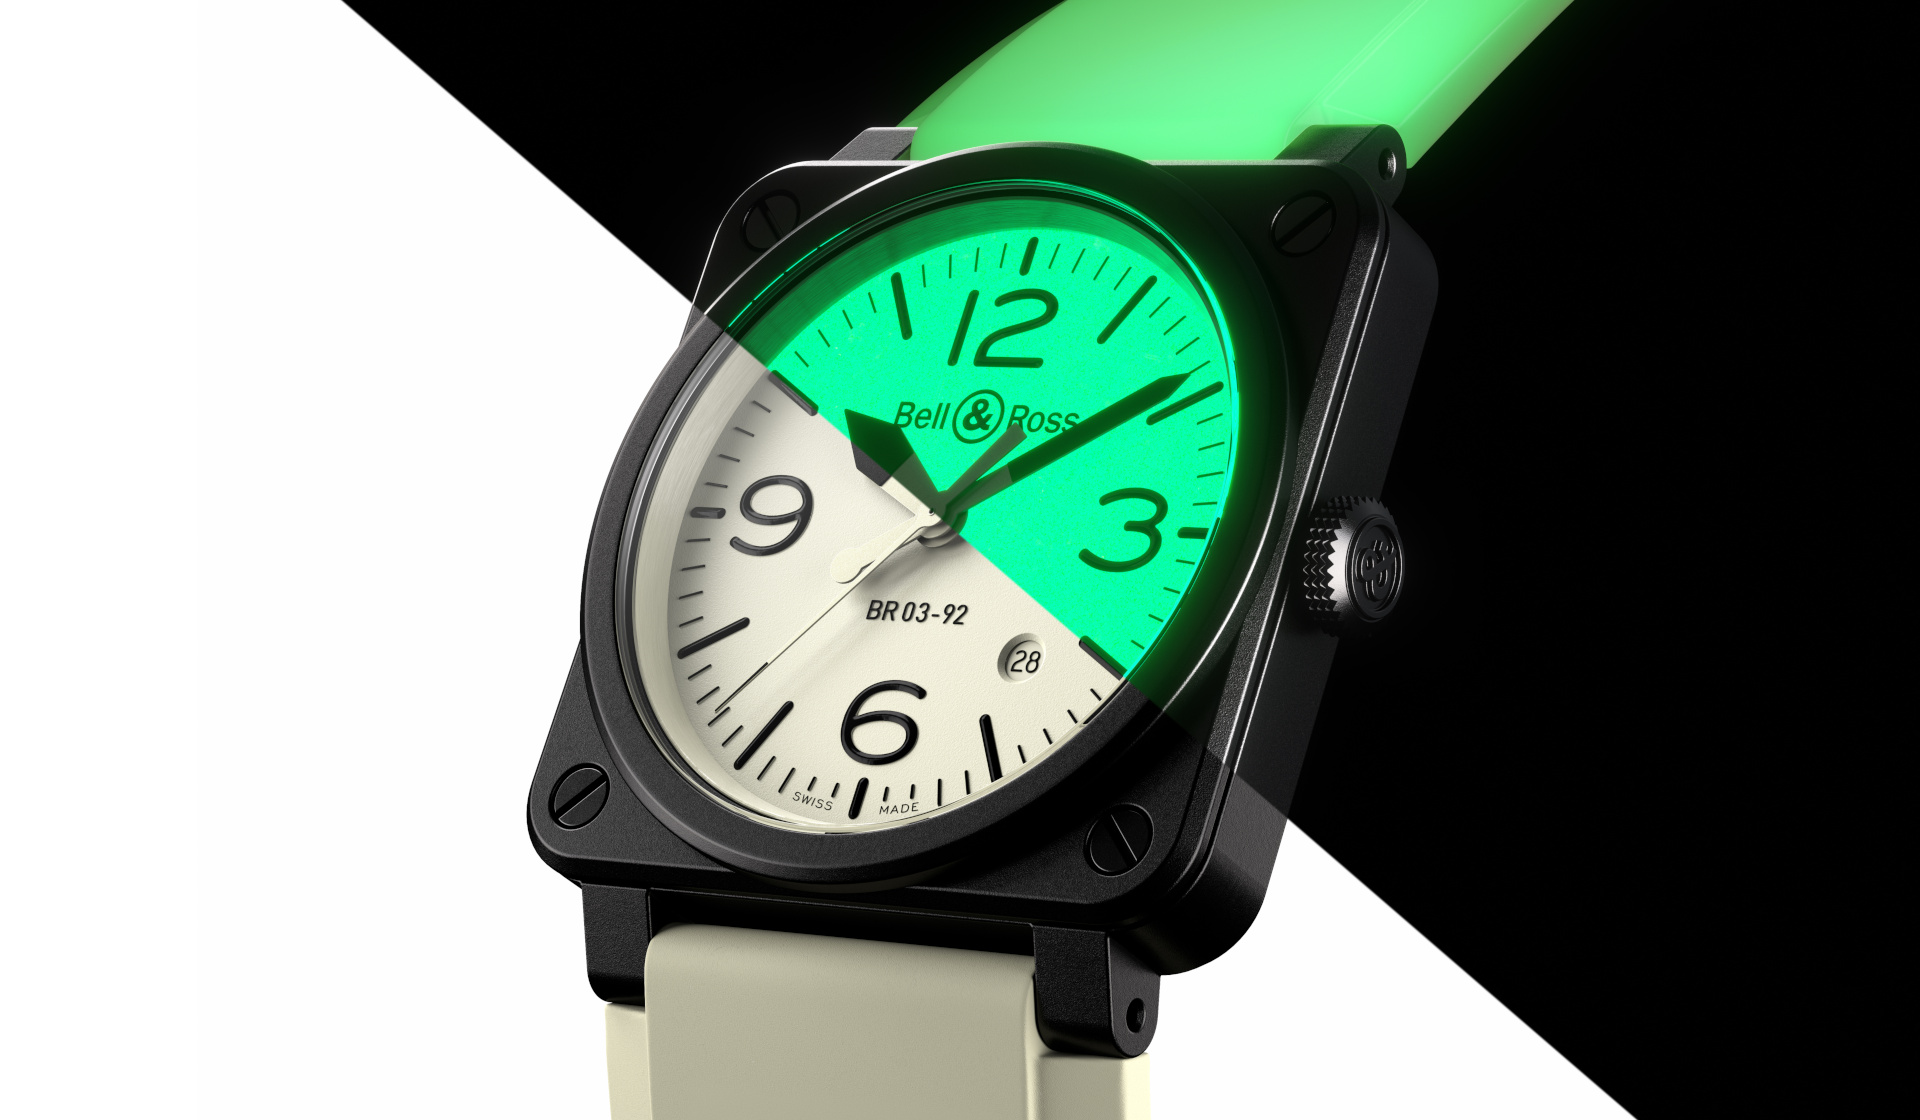 The Bell & Ross BR 03-92 Full Lum shines in the absence of light